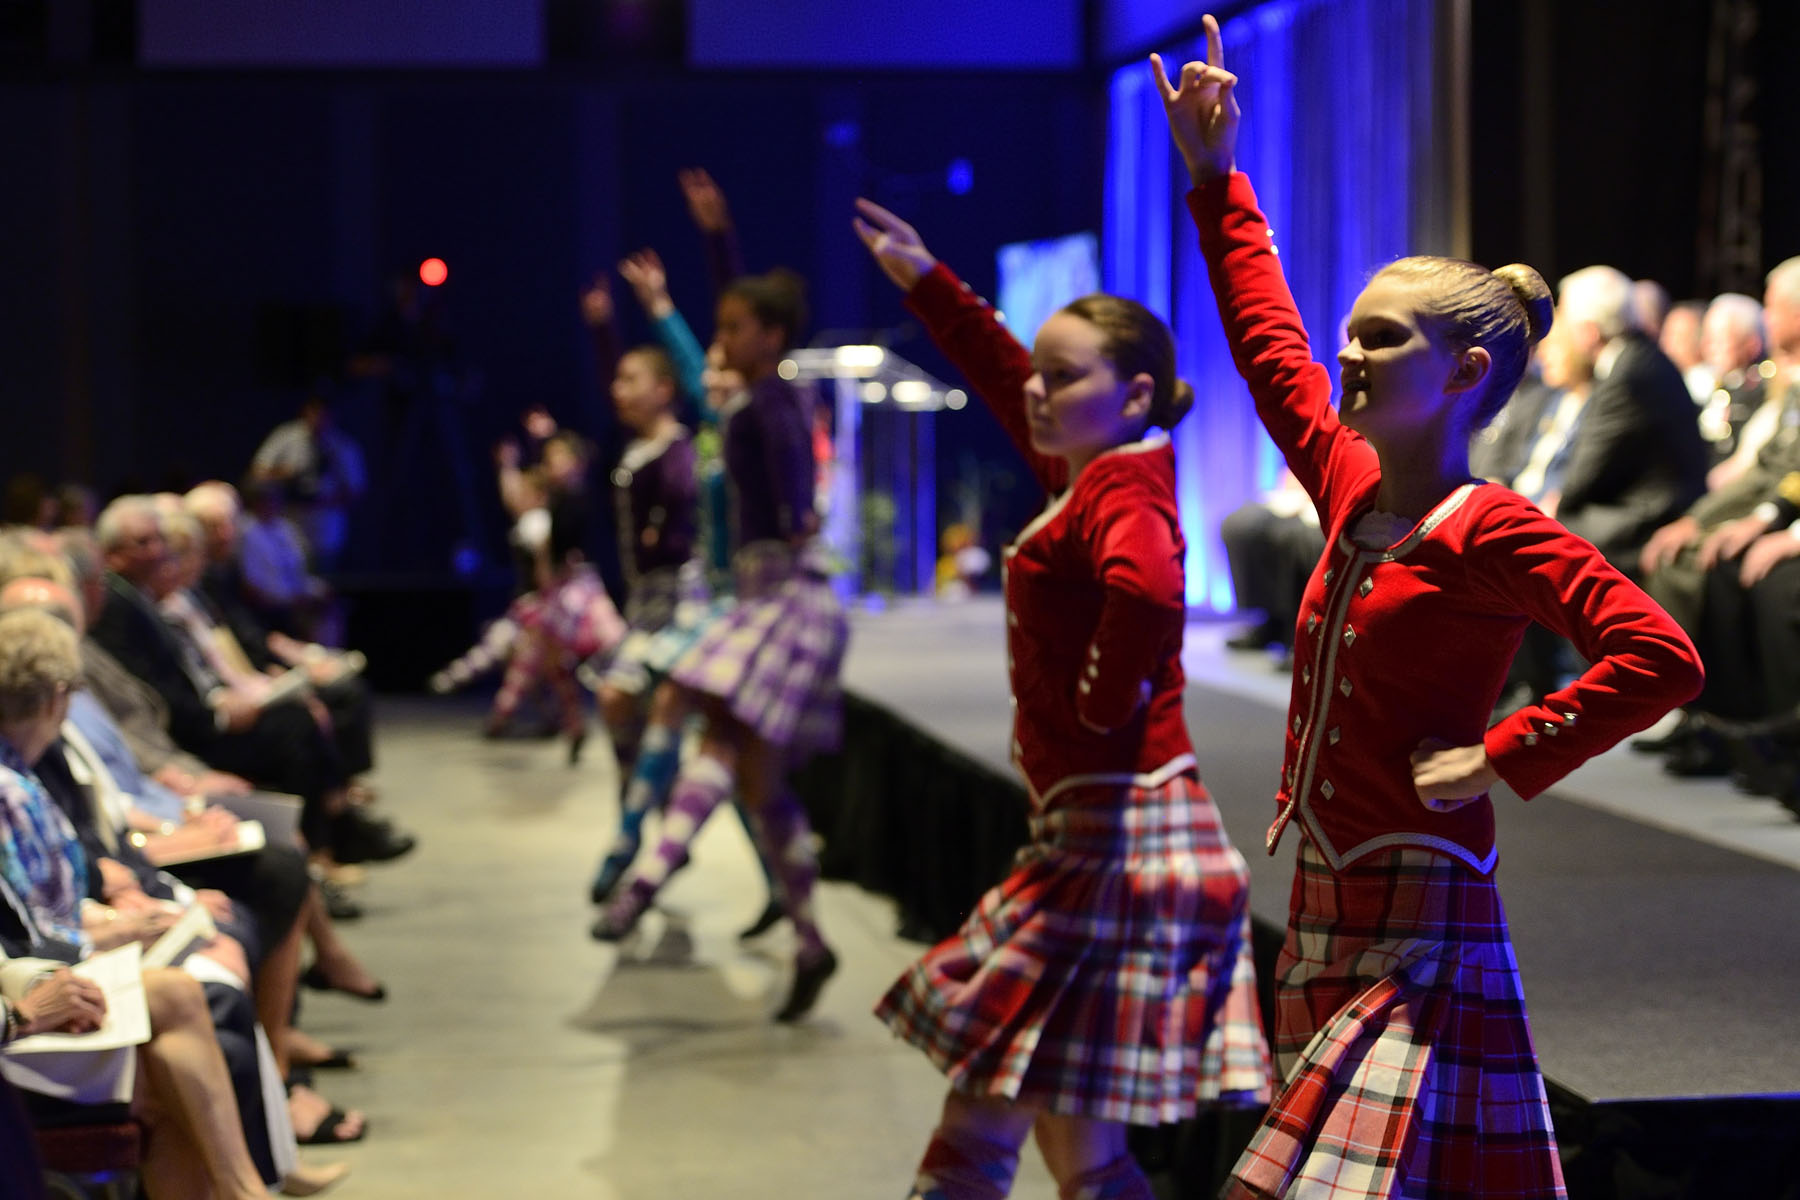 Dancers from the Halifax Highland Dancing Association entertained guests during a cultural interlude.